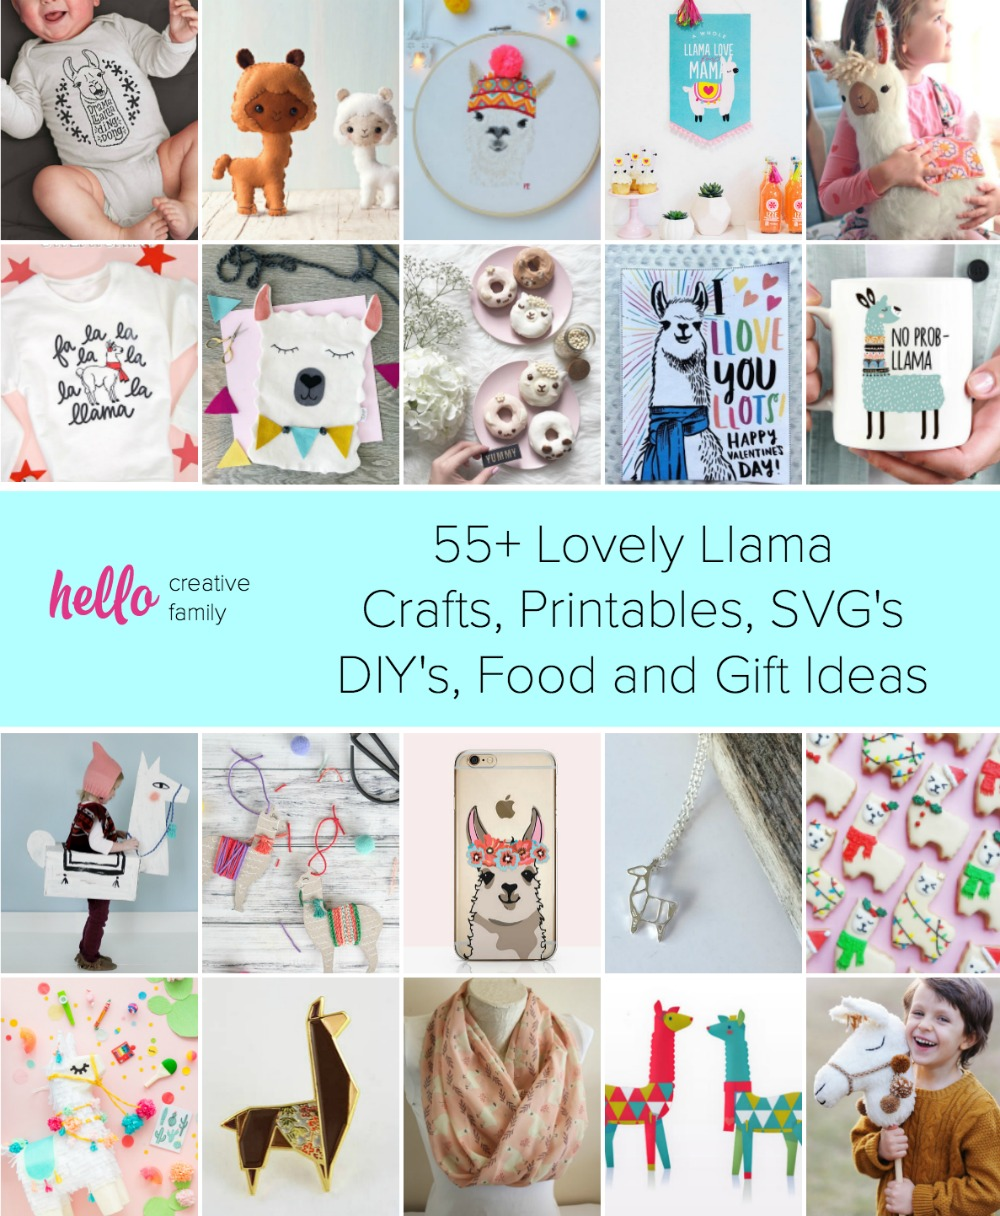 55+ Lovely Llama Crafts, Printables, SVG's DIY's, Food and Gift Ideas #Crafts #DIY #Printables #GiftIdeas #llama